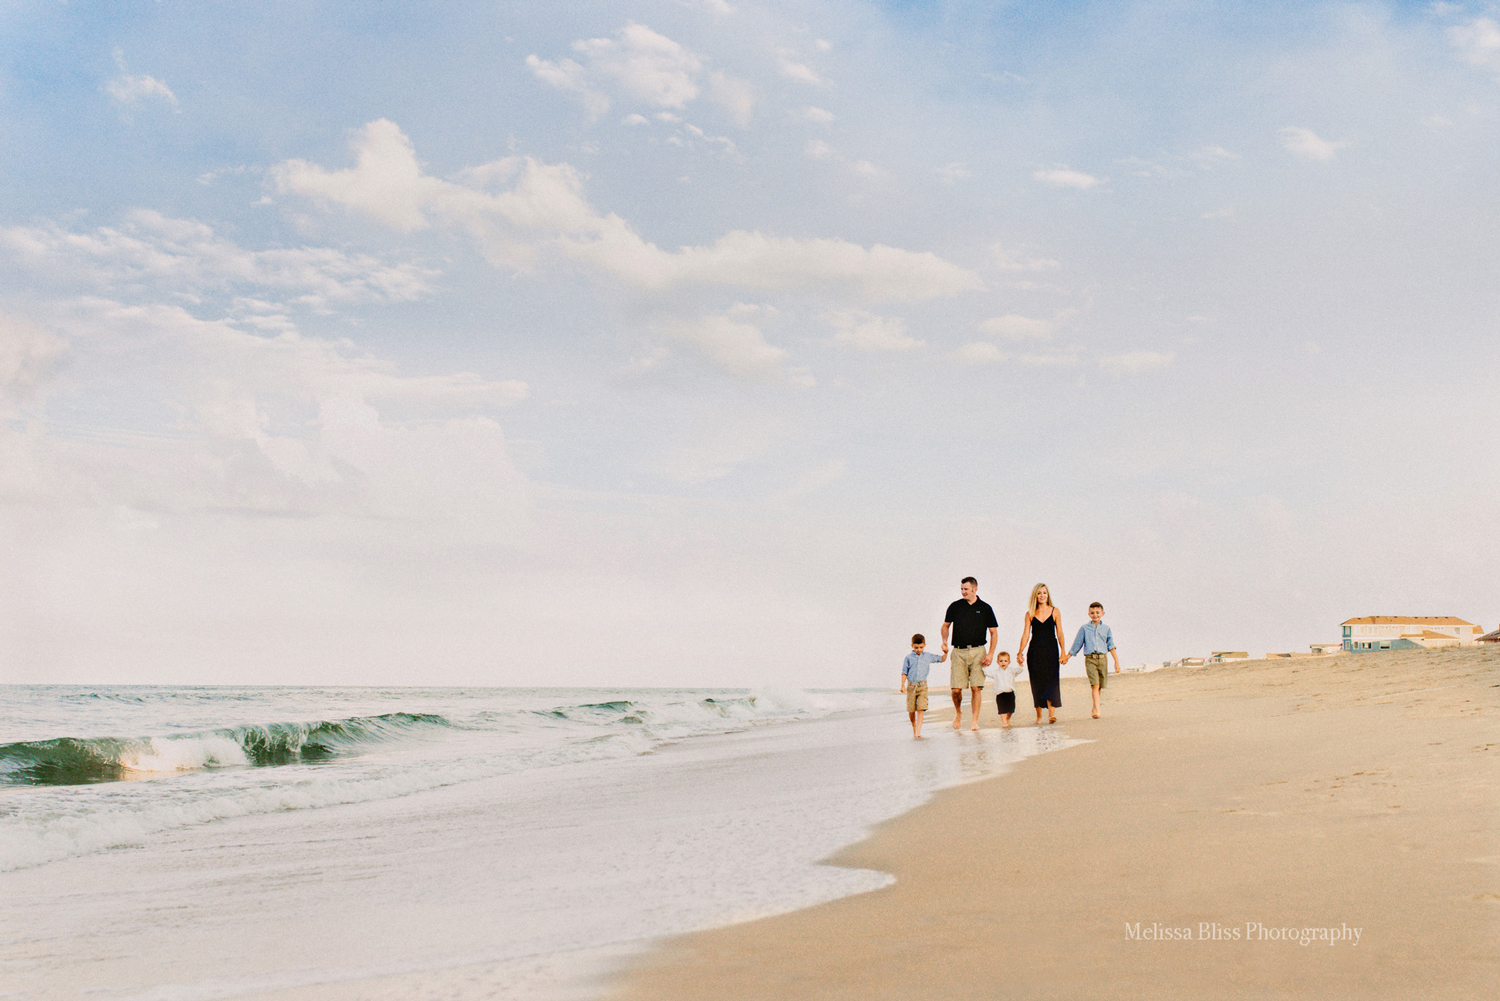 sandbridge-beach-fine-art-family-portraits-melissa-bliss-photography-virginia-beach-family-pictures.jpg